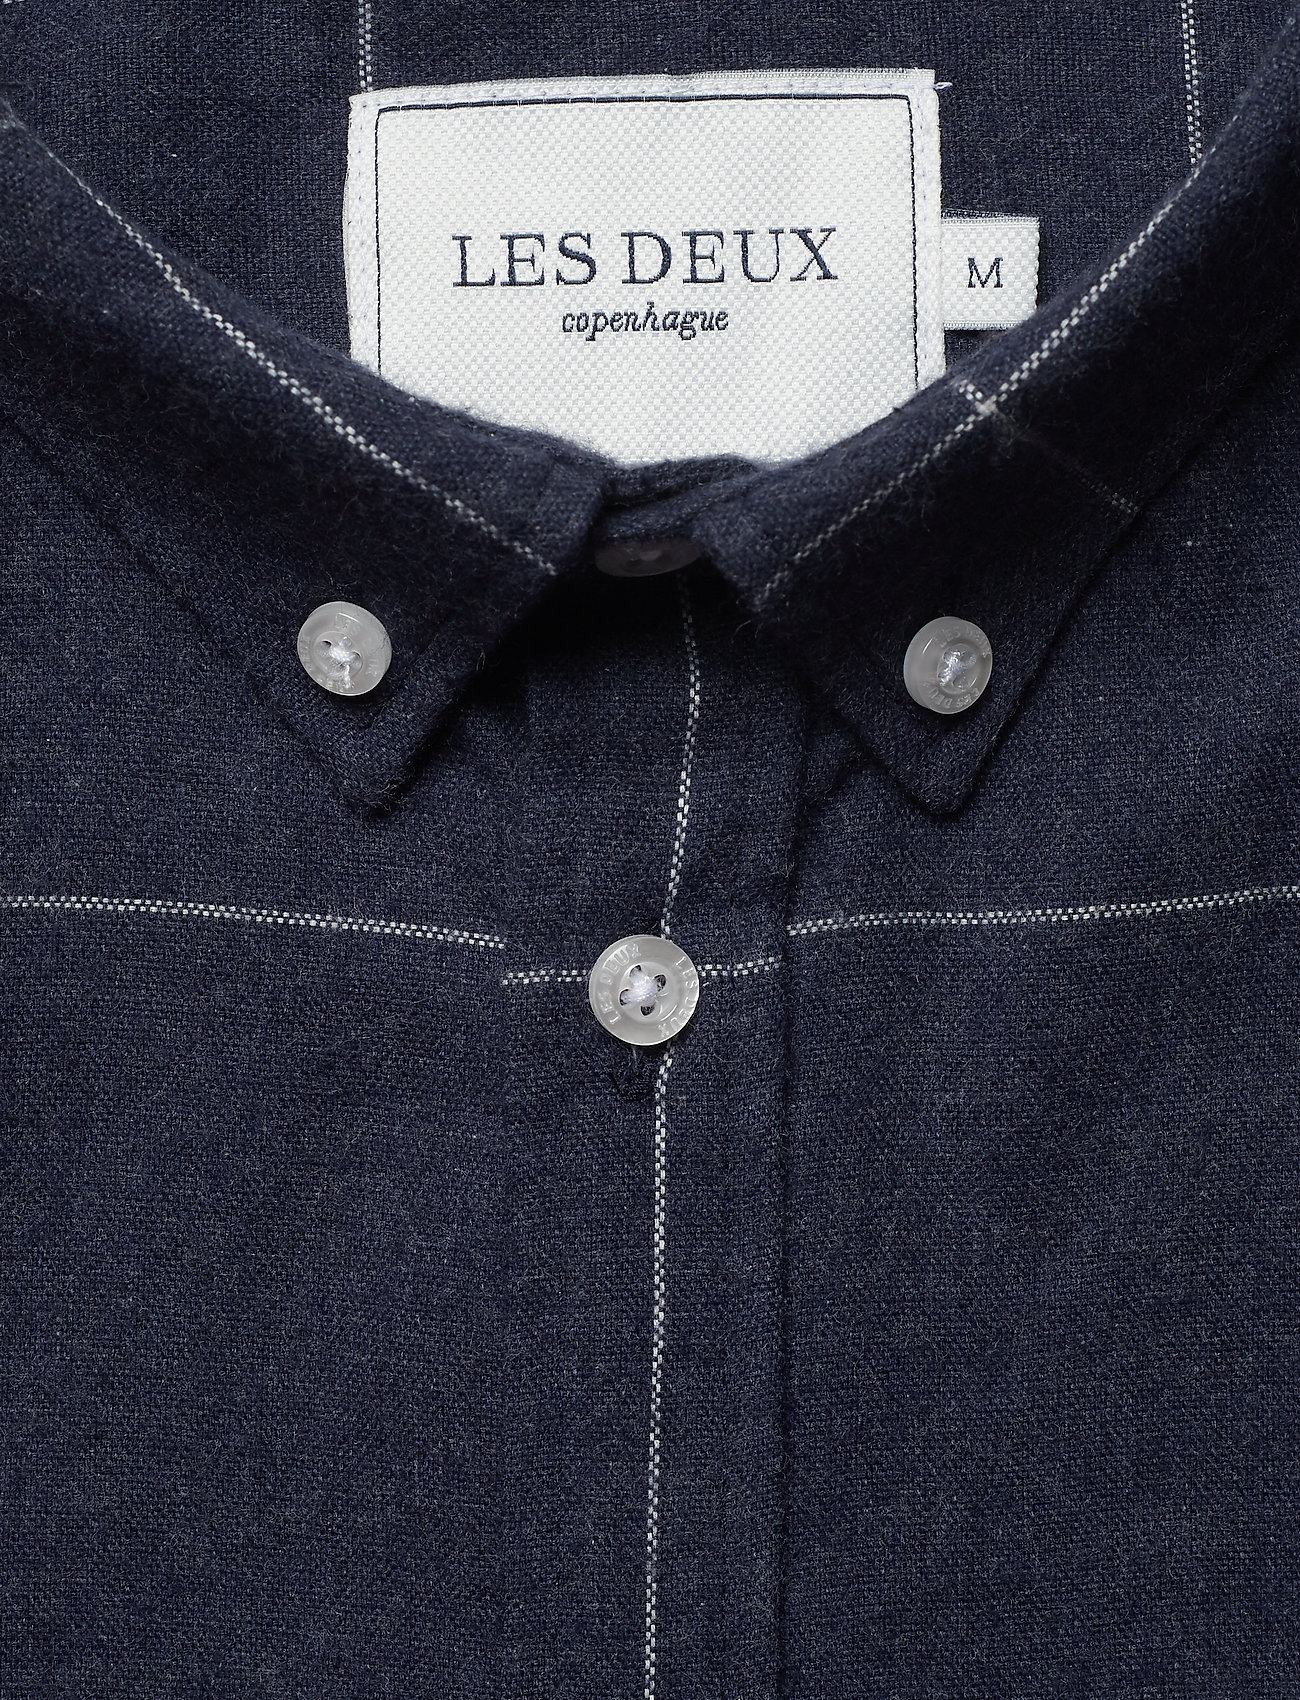 Desert Navy Desert Shirtdark CheckLes Deux Shirtdark Navy Deux CheckLes hQsrCtd